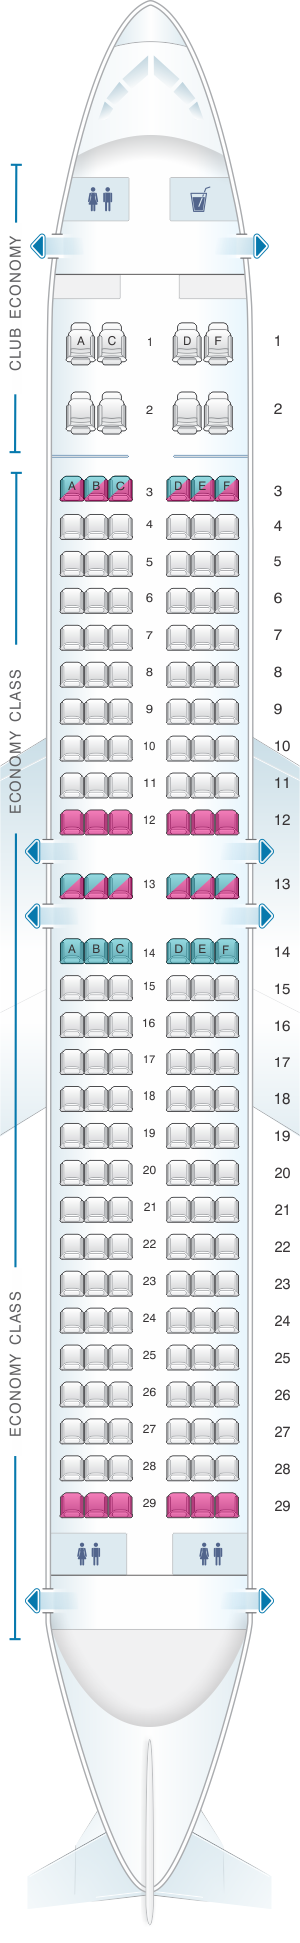 Seat map for Aerolineas Argentinas Boeing B737 800 MAX 8